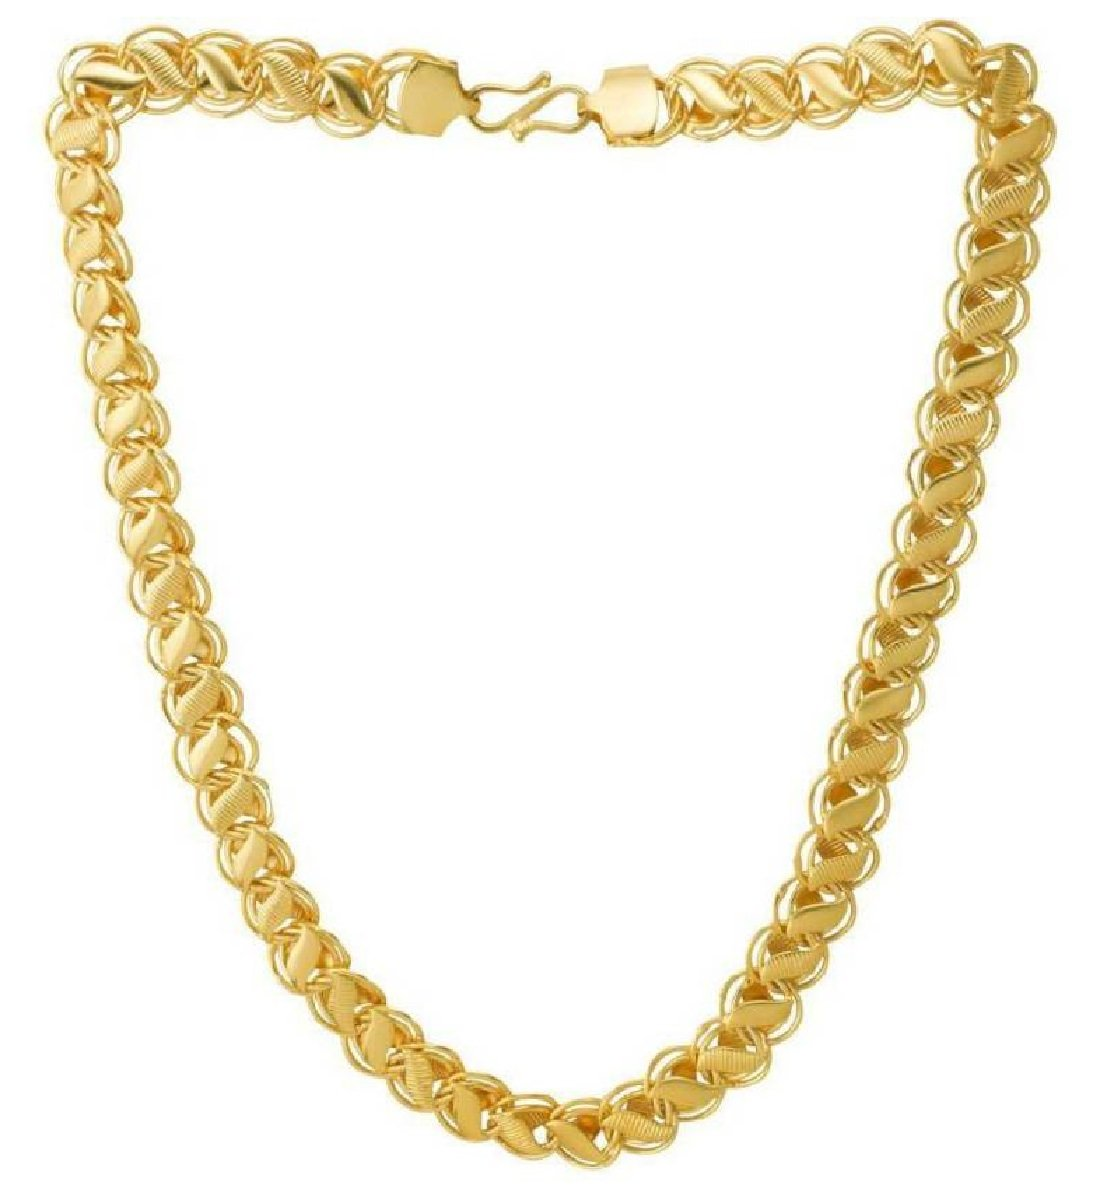 Amazon price history for Aabhu Gold And Rhodium Coated Chain For Men